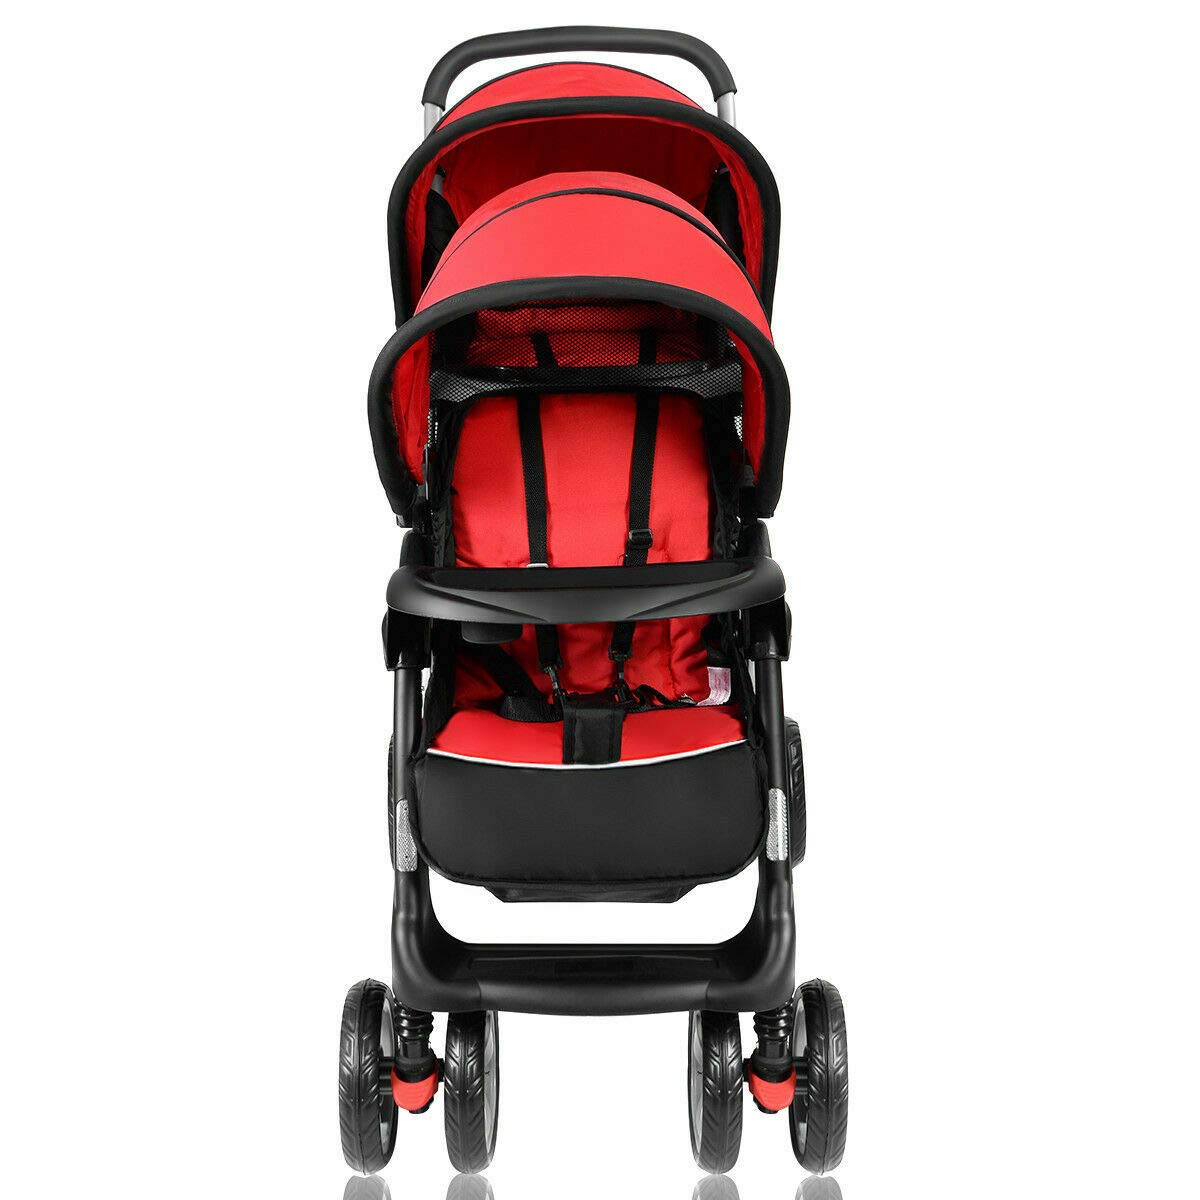 Cozinest Foldable Twin Baby Double Stroller Kids Jogger Travel Infant Pushchair Red by Cozinest (Image #7)